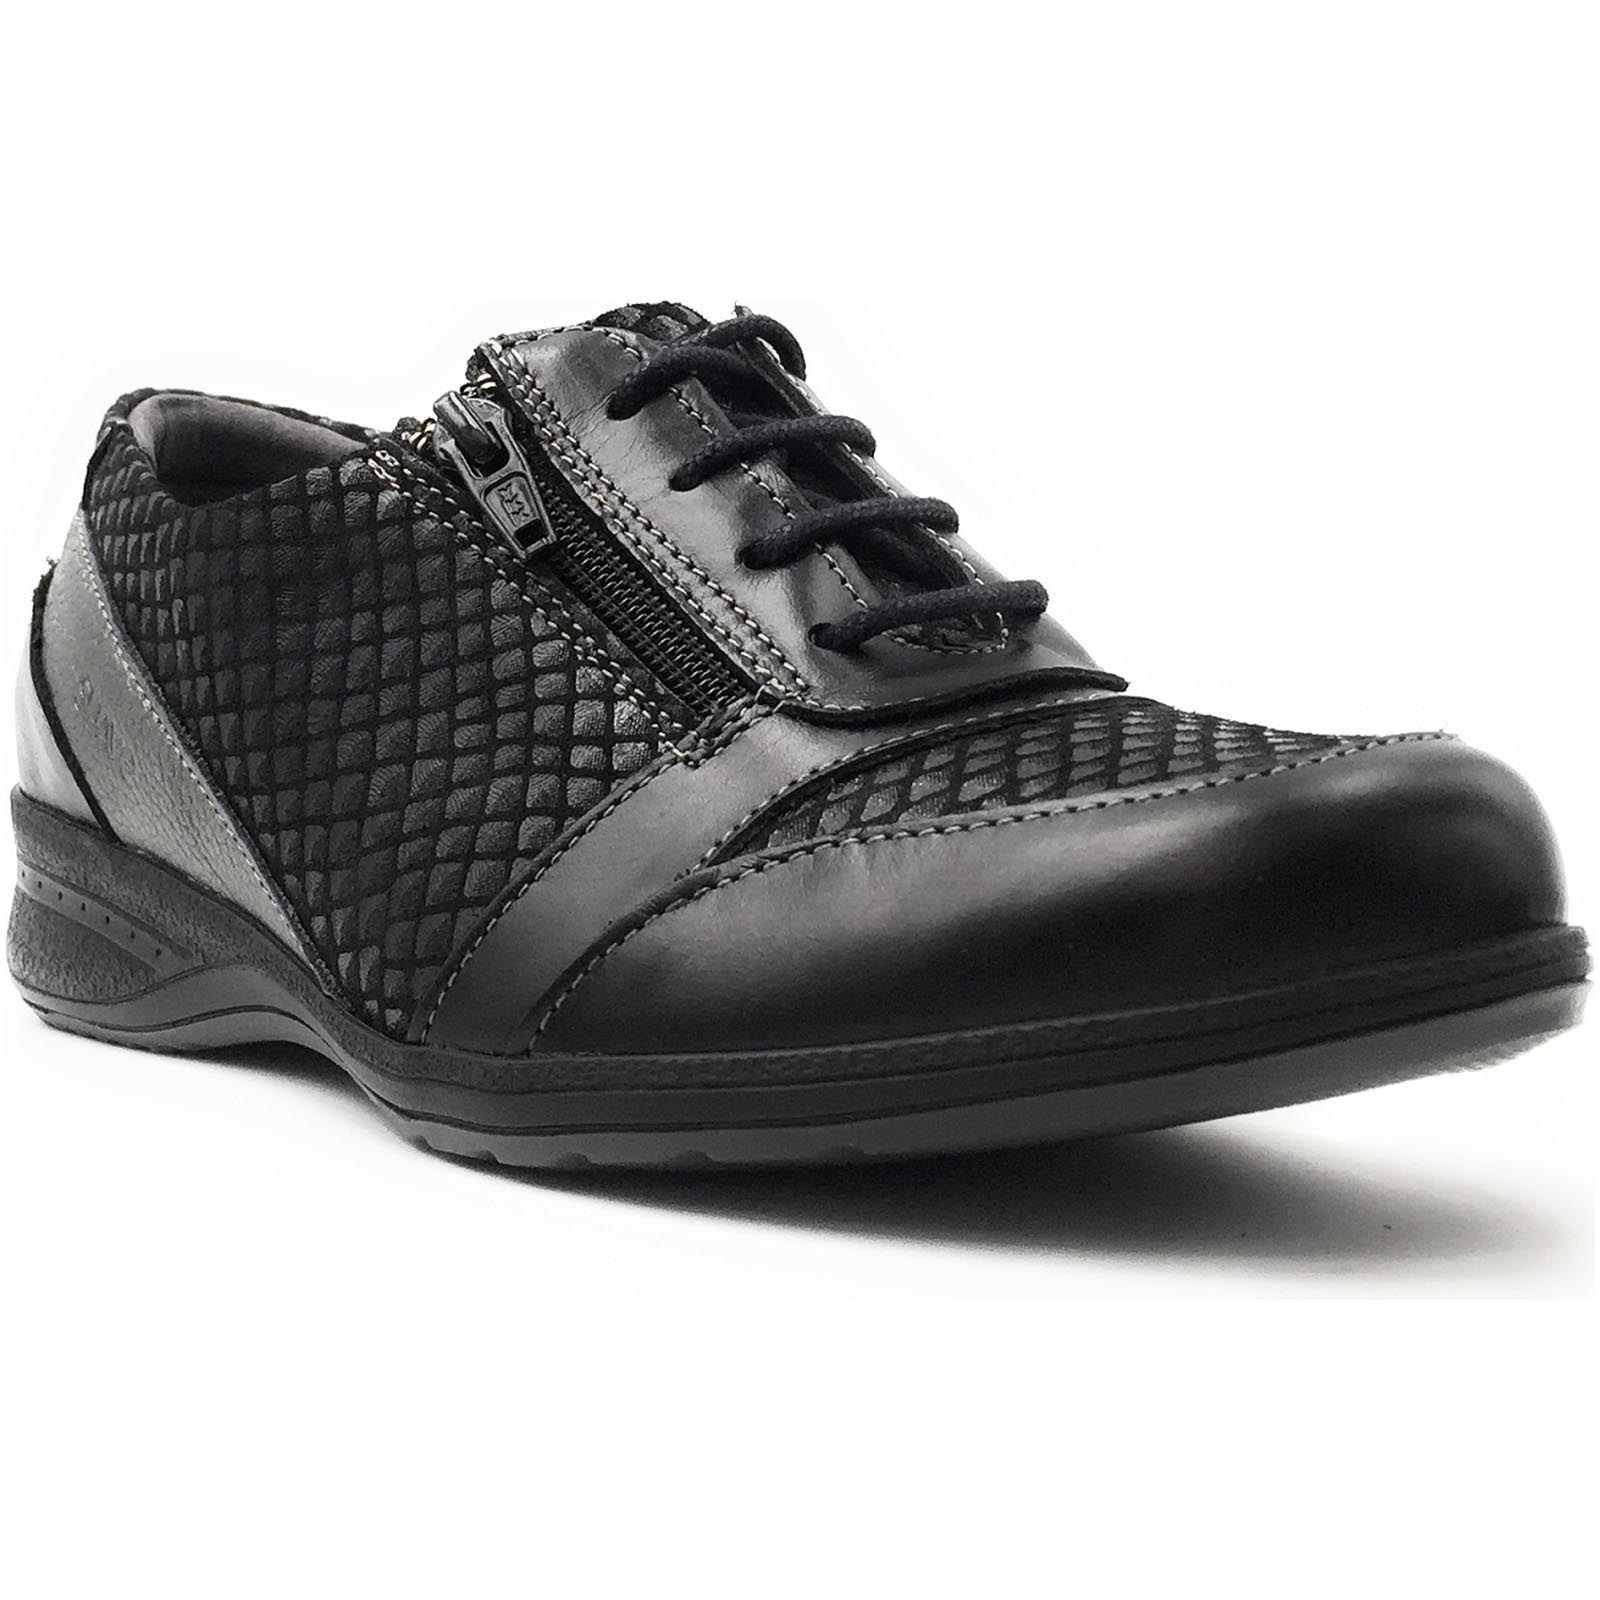 Suave baskets mode 7518 noir